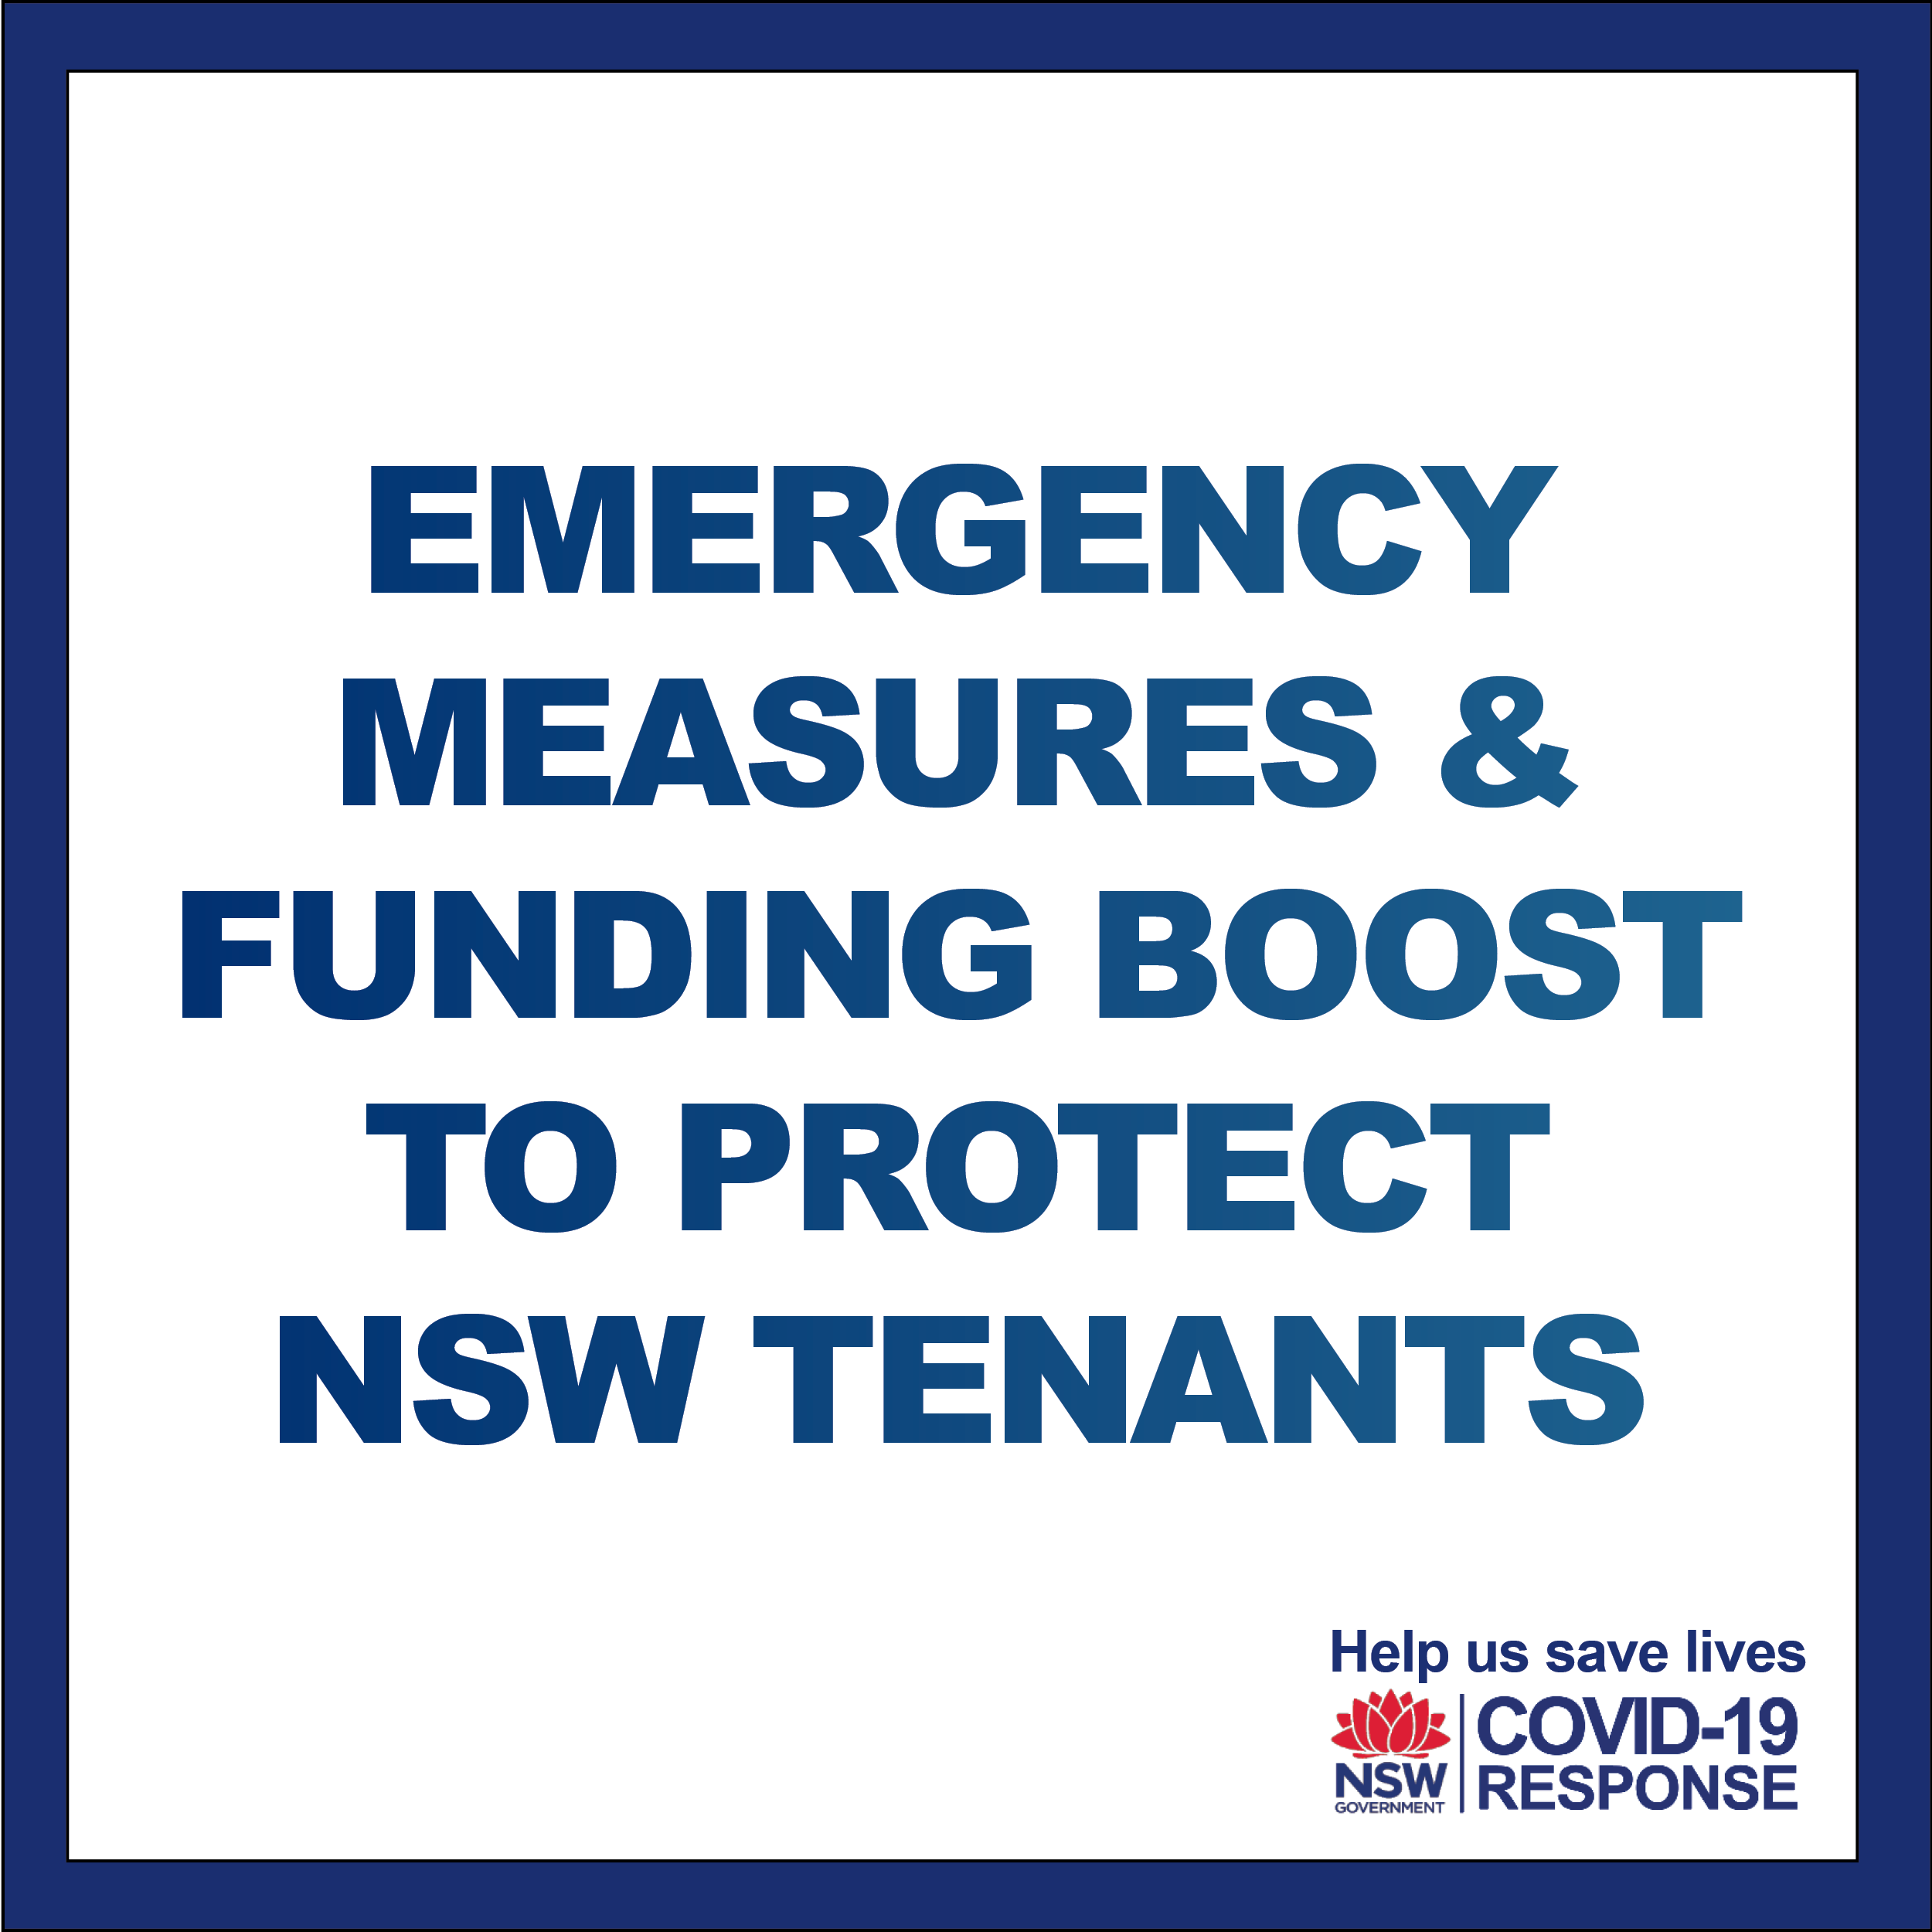 The State Government has announced a $440m emergency package for residential tenants and landlords which I believe will go a long way